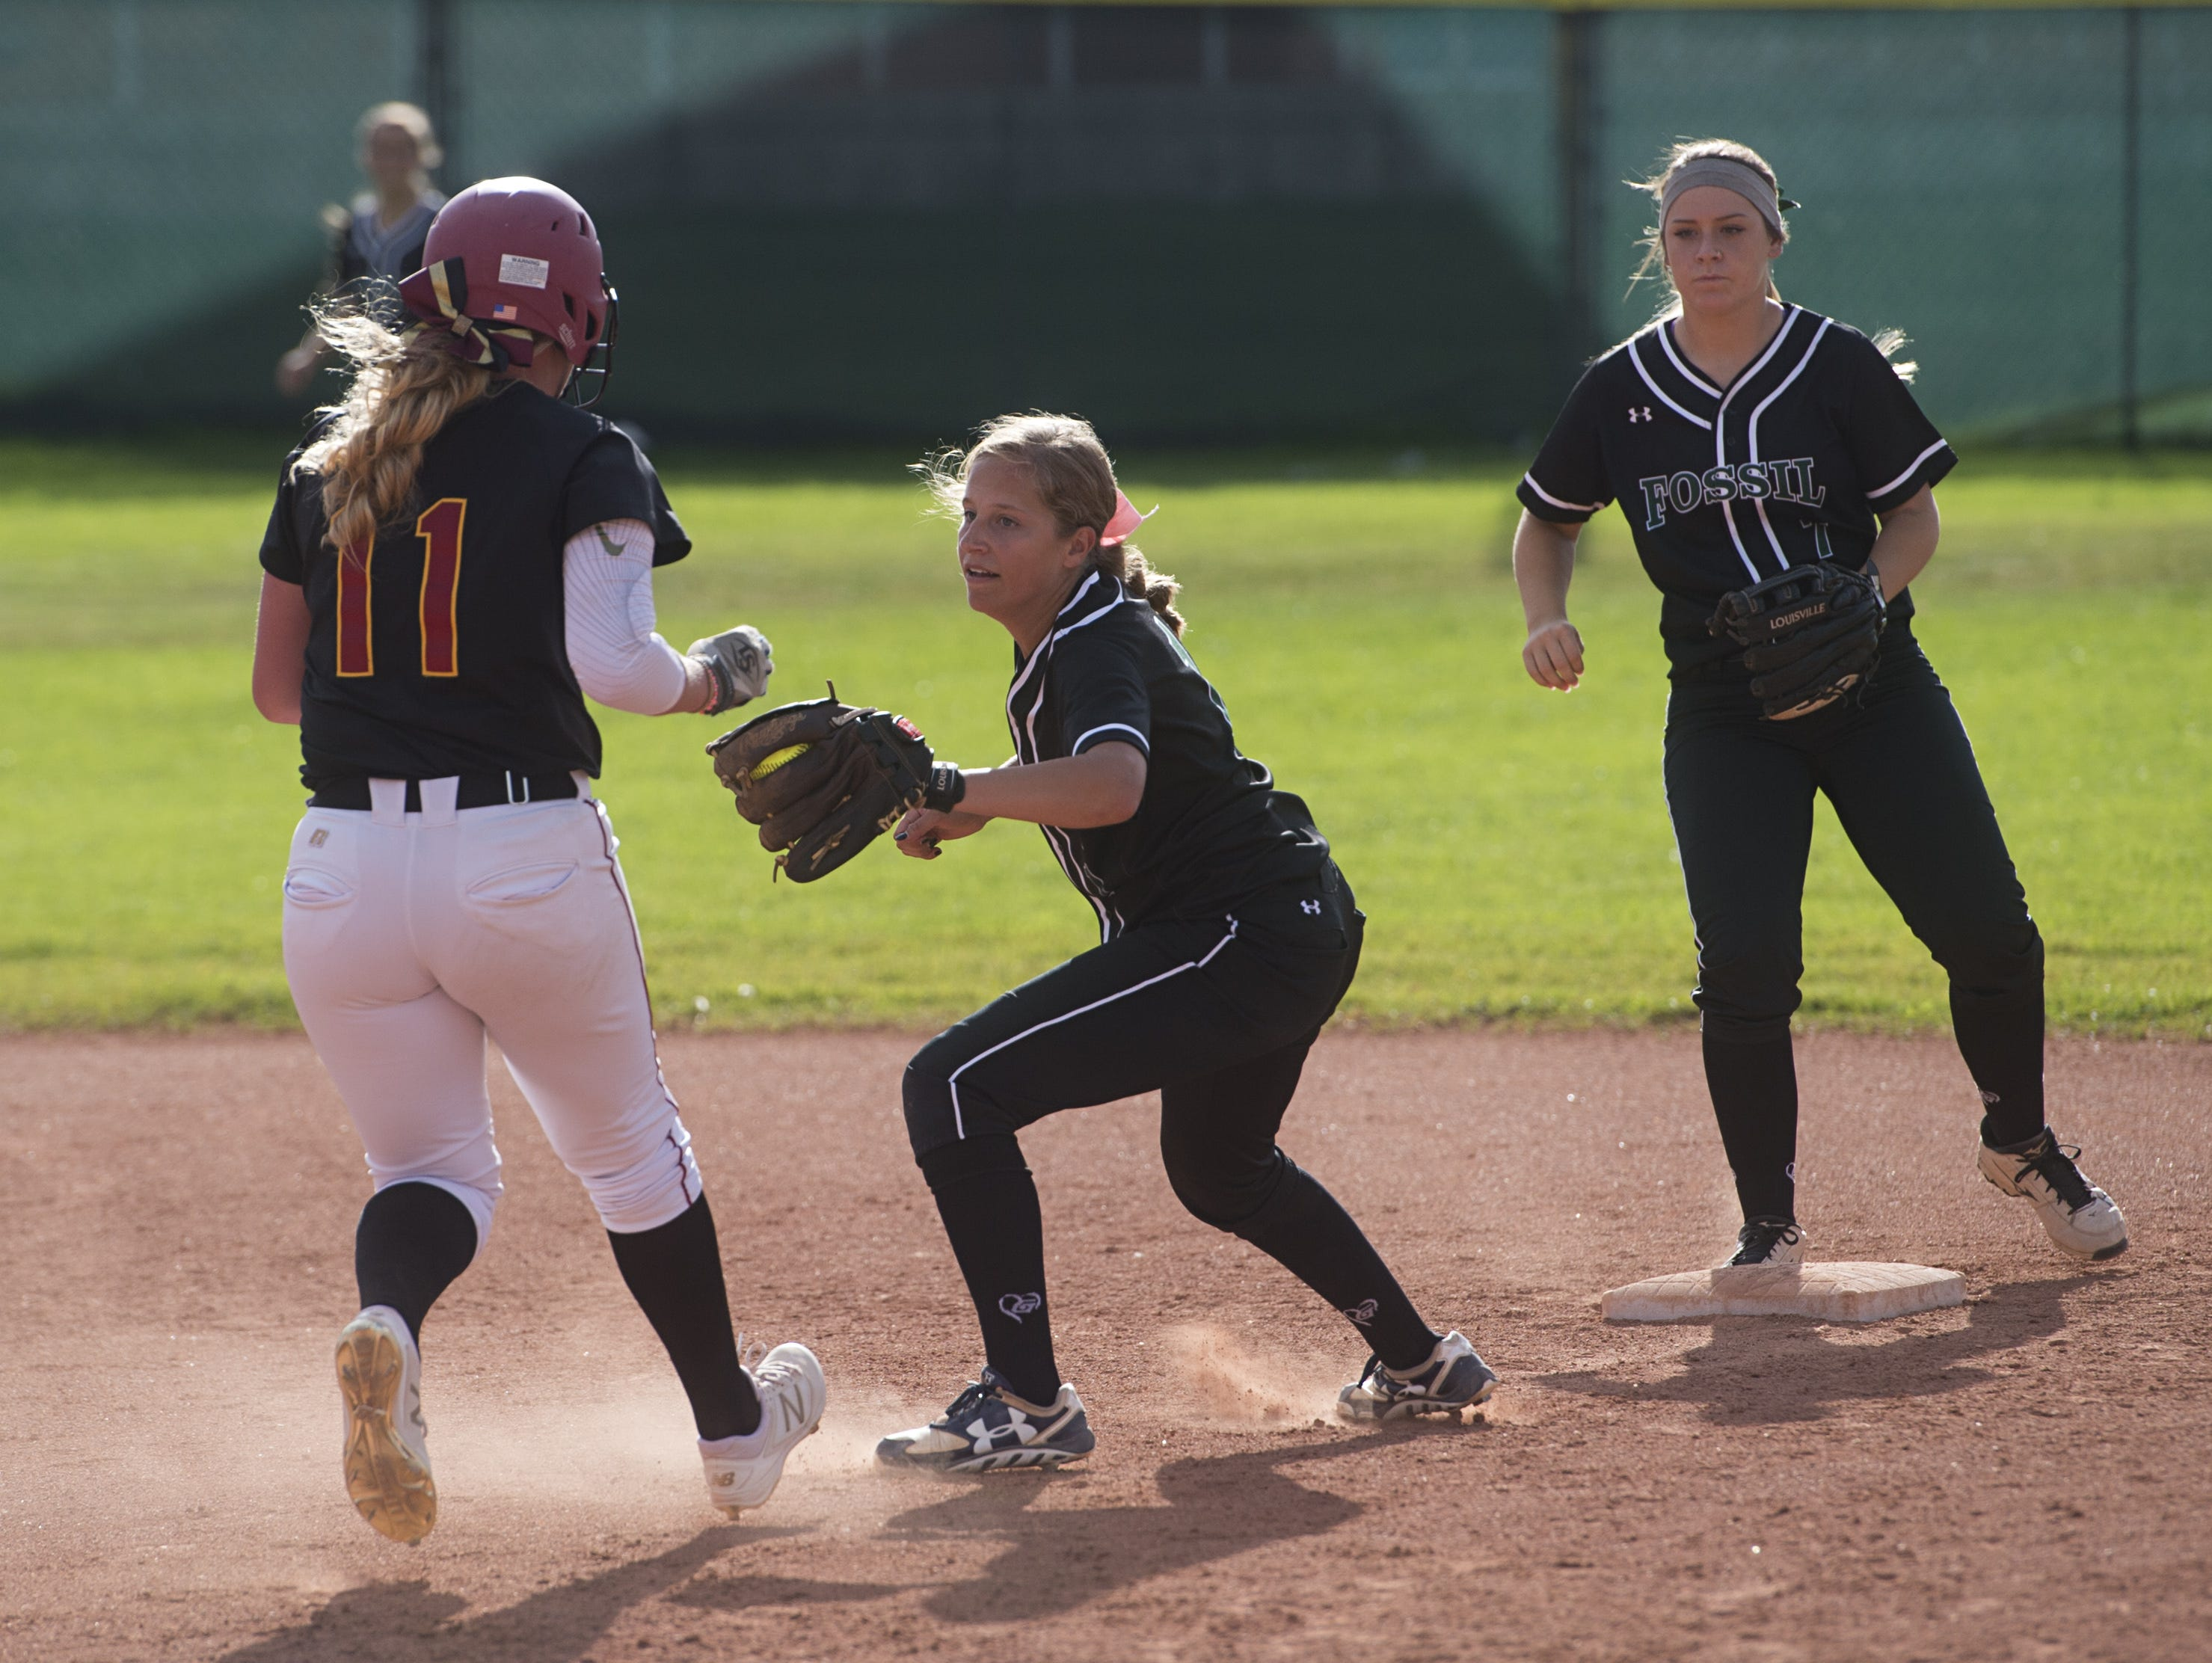 The Fossil Ridge and Rocky Mountain softball teams are No. 11 and 12, respectively, in 5A in RPI score, which is used to determine playoff fields.